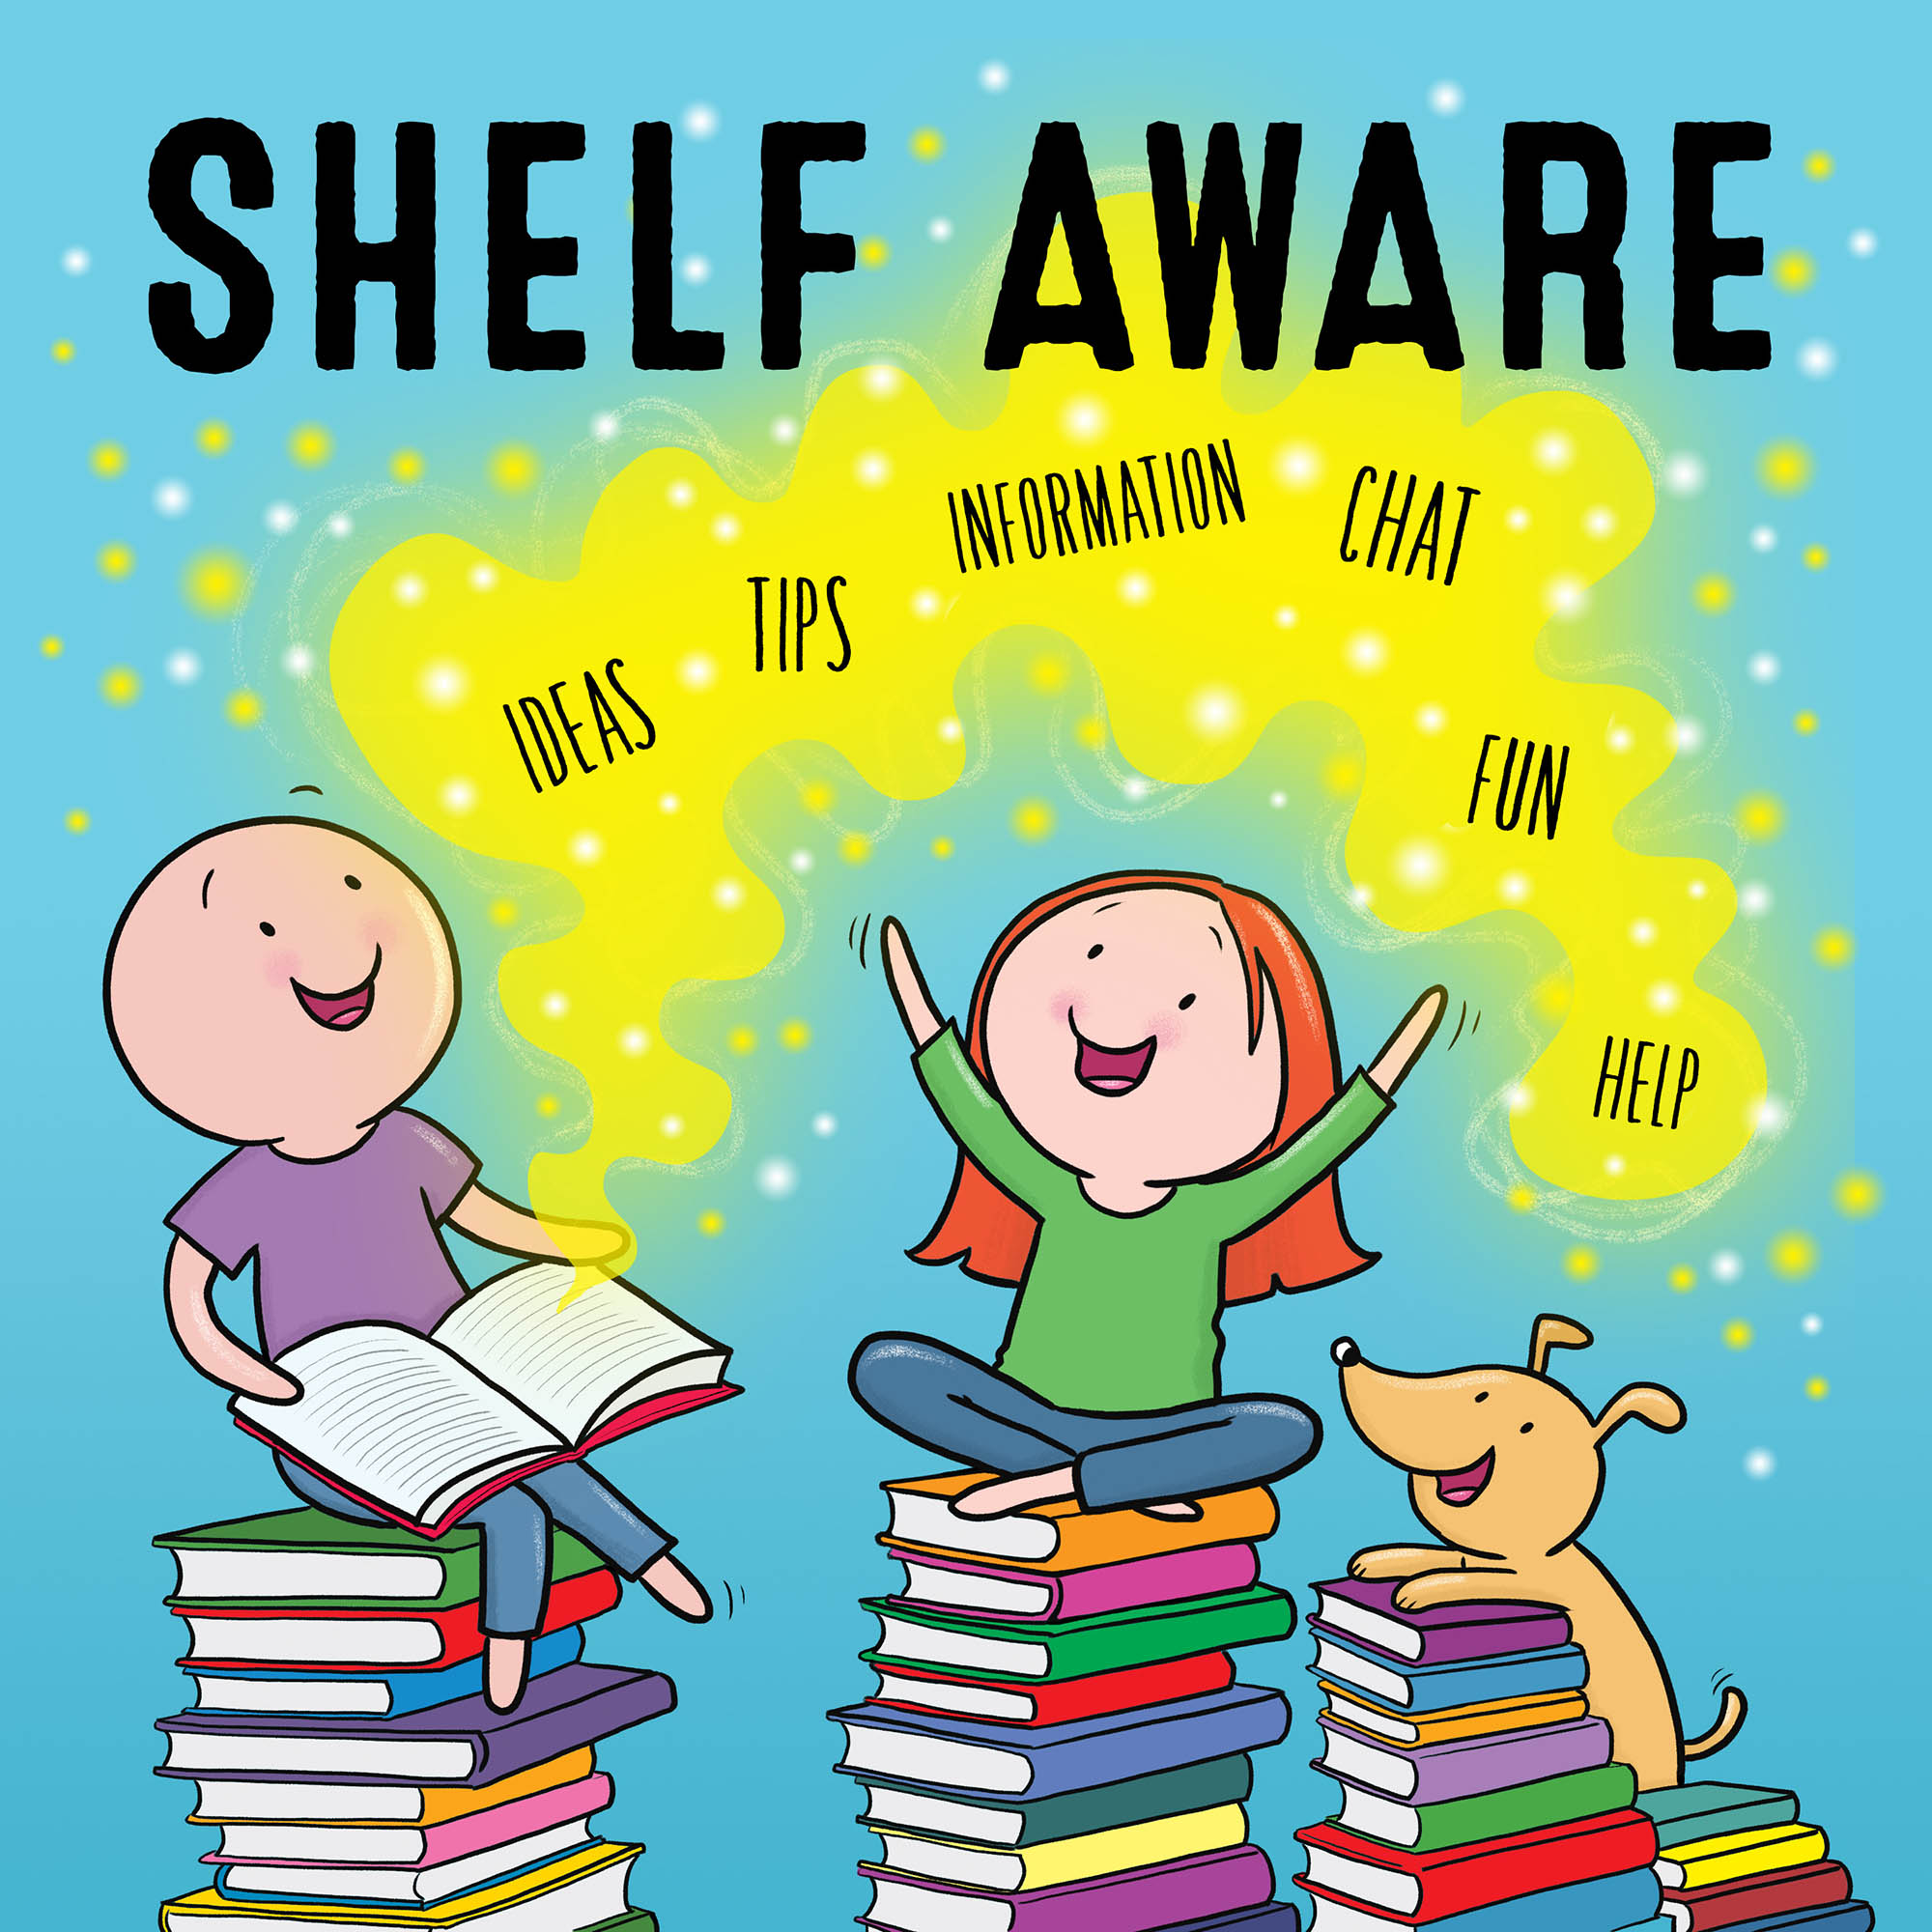 Shelf Aware Books Podcast Trailer Launch